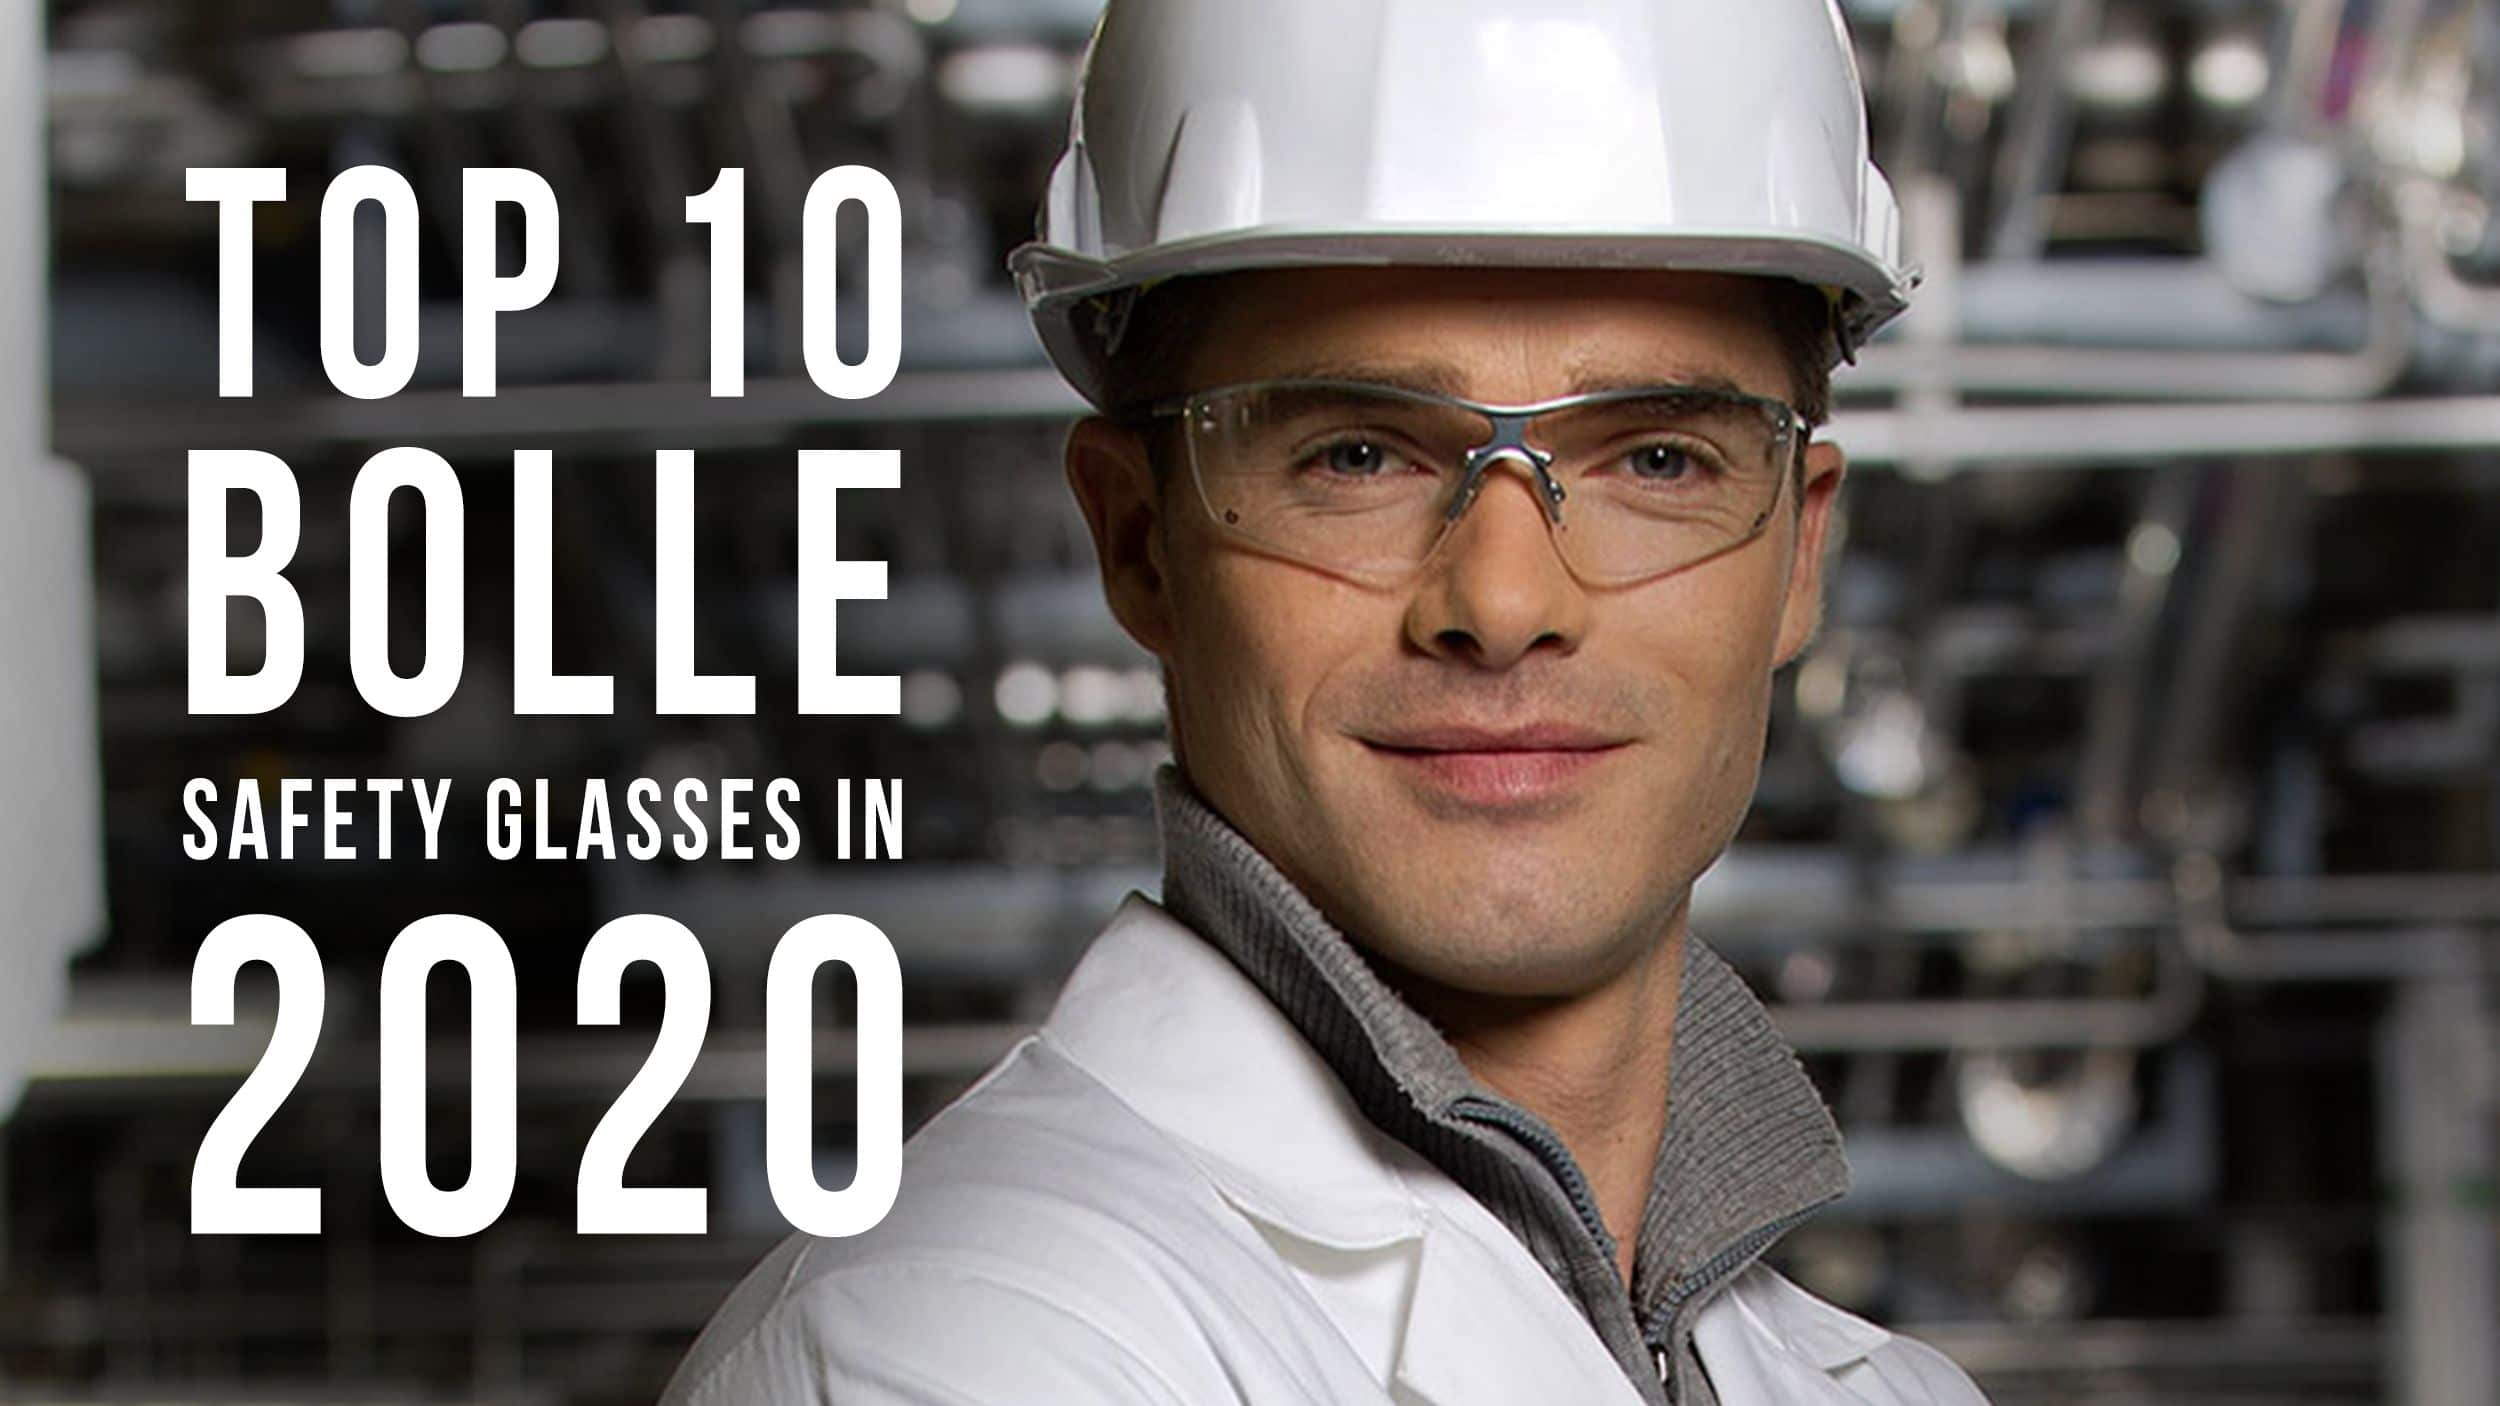 Top 10 Bolle Safety Glasses In 2020 Header